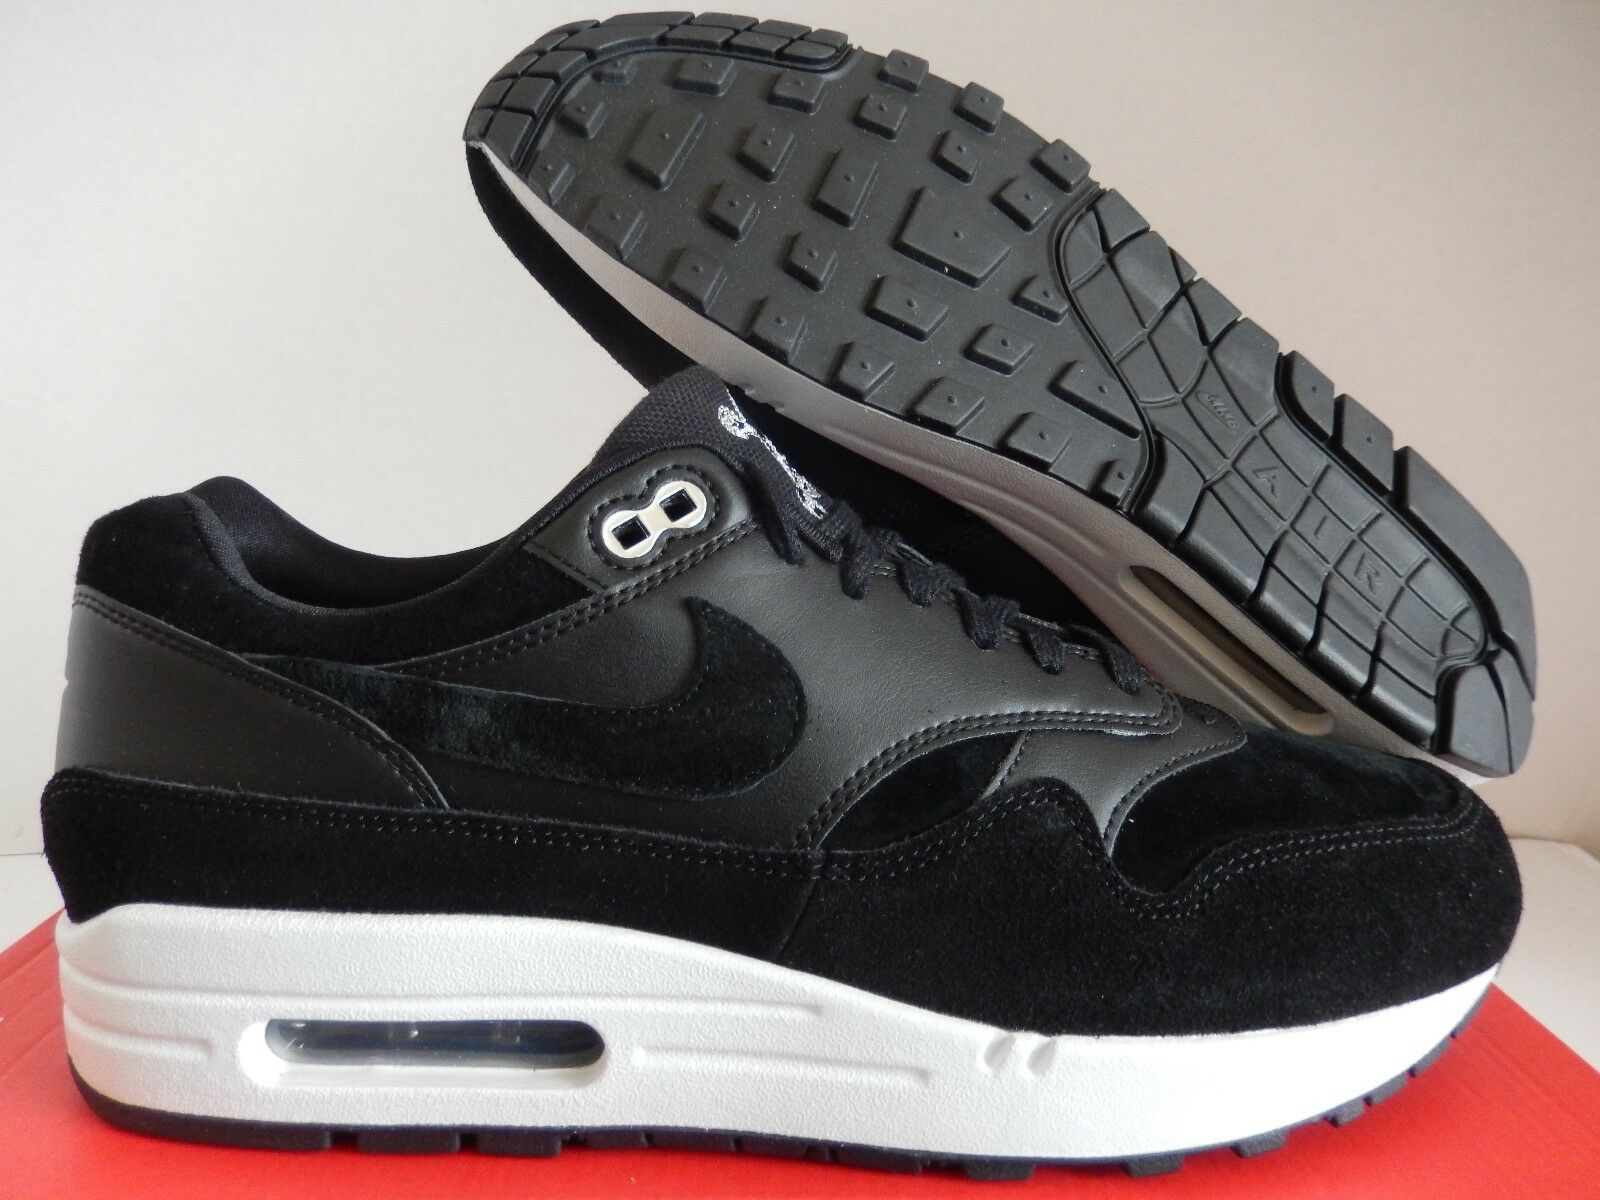 NIKE AIR MAX 1 PREMIUM BLACK-CHROME-OFF WHITE  SKULLS  SZ 10